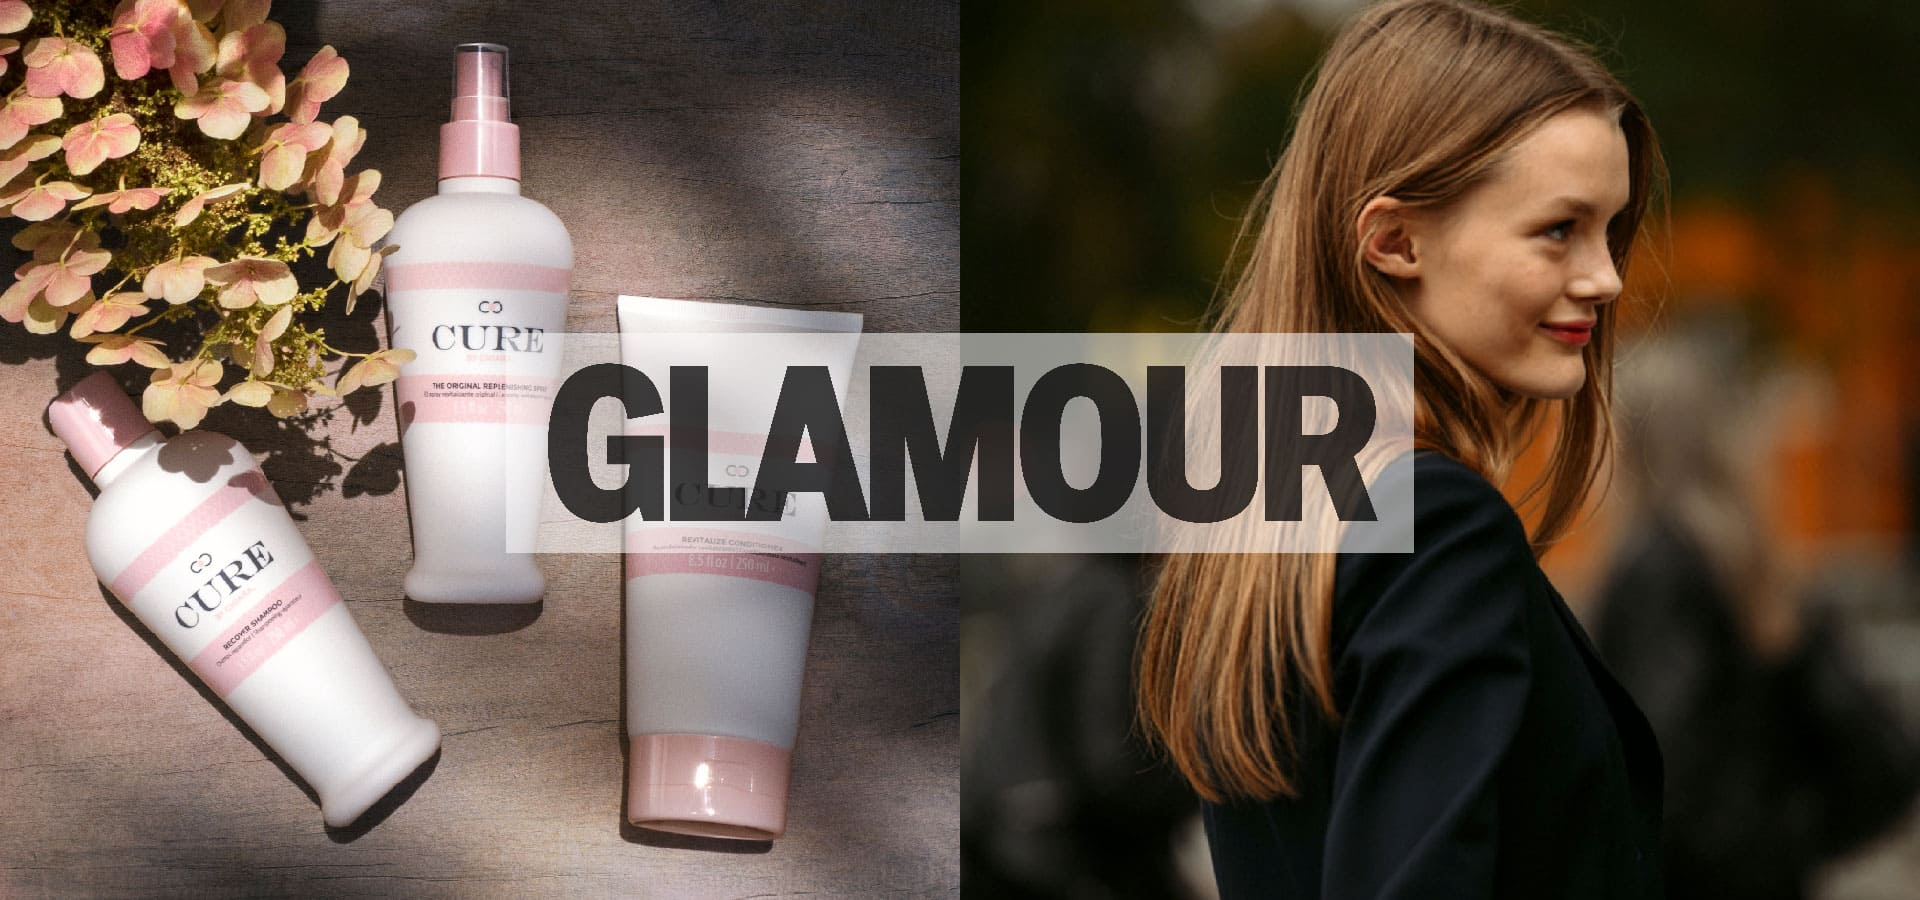 Cure by Chiara en Glamour